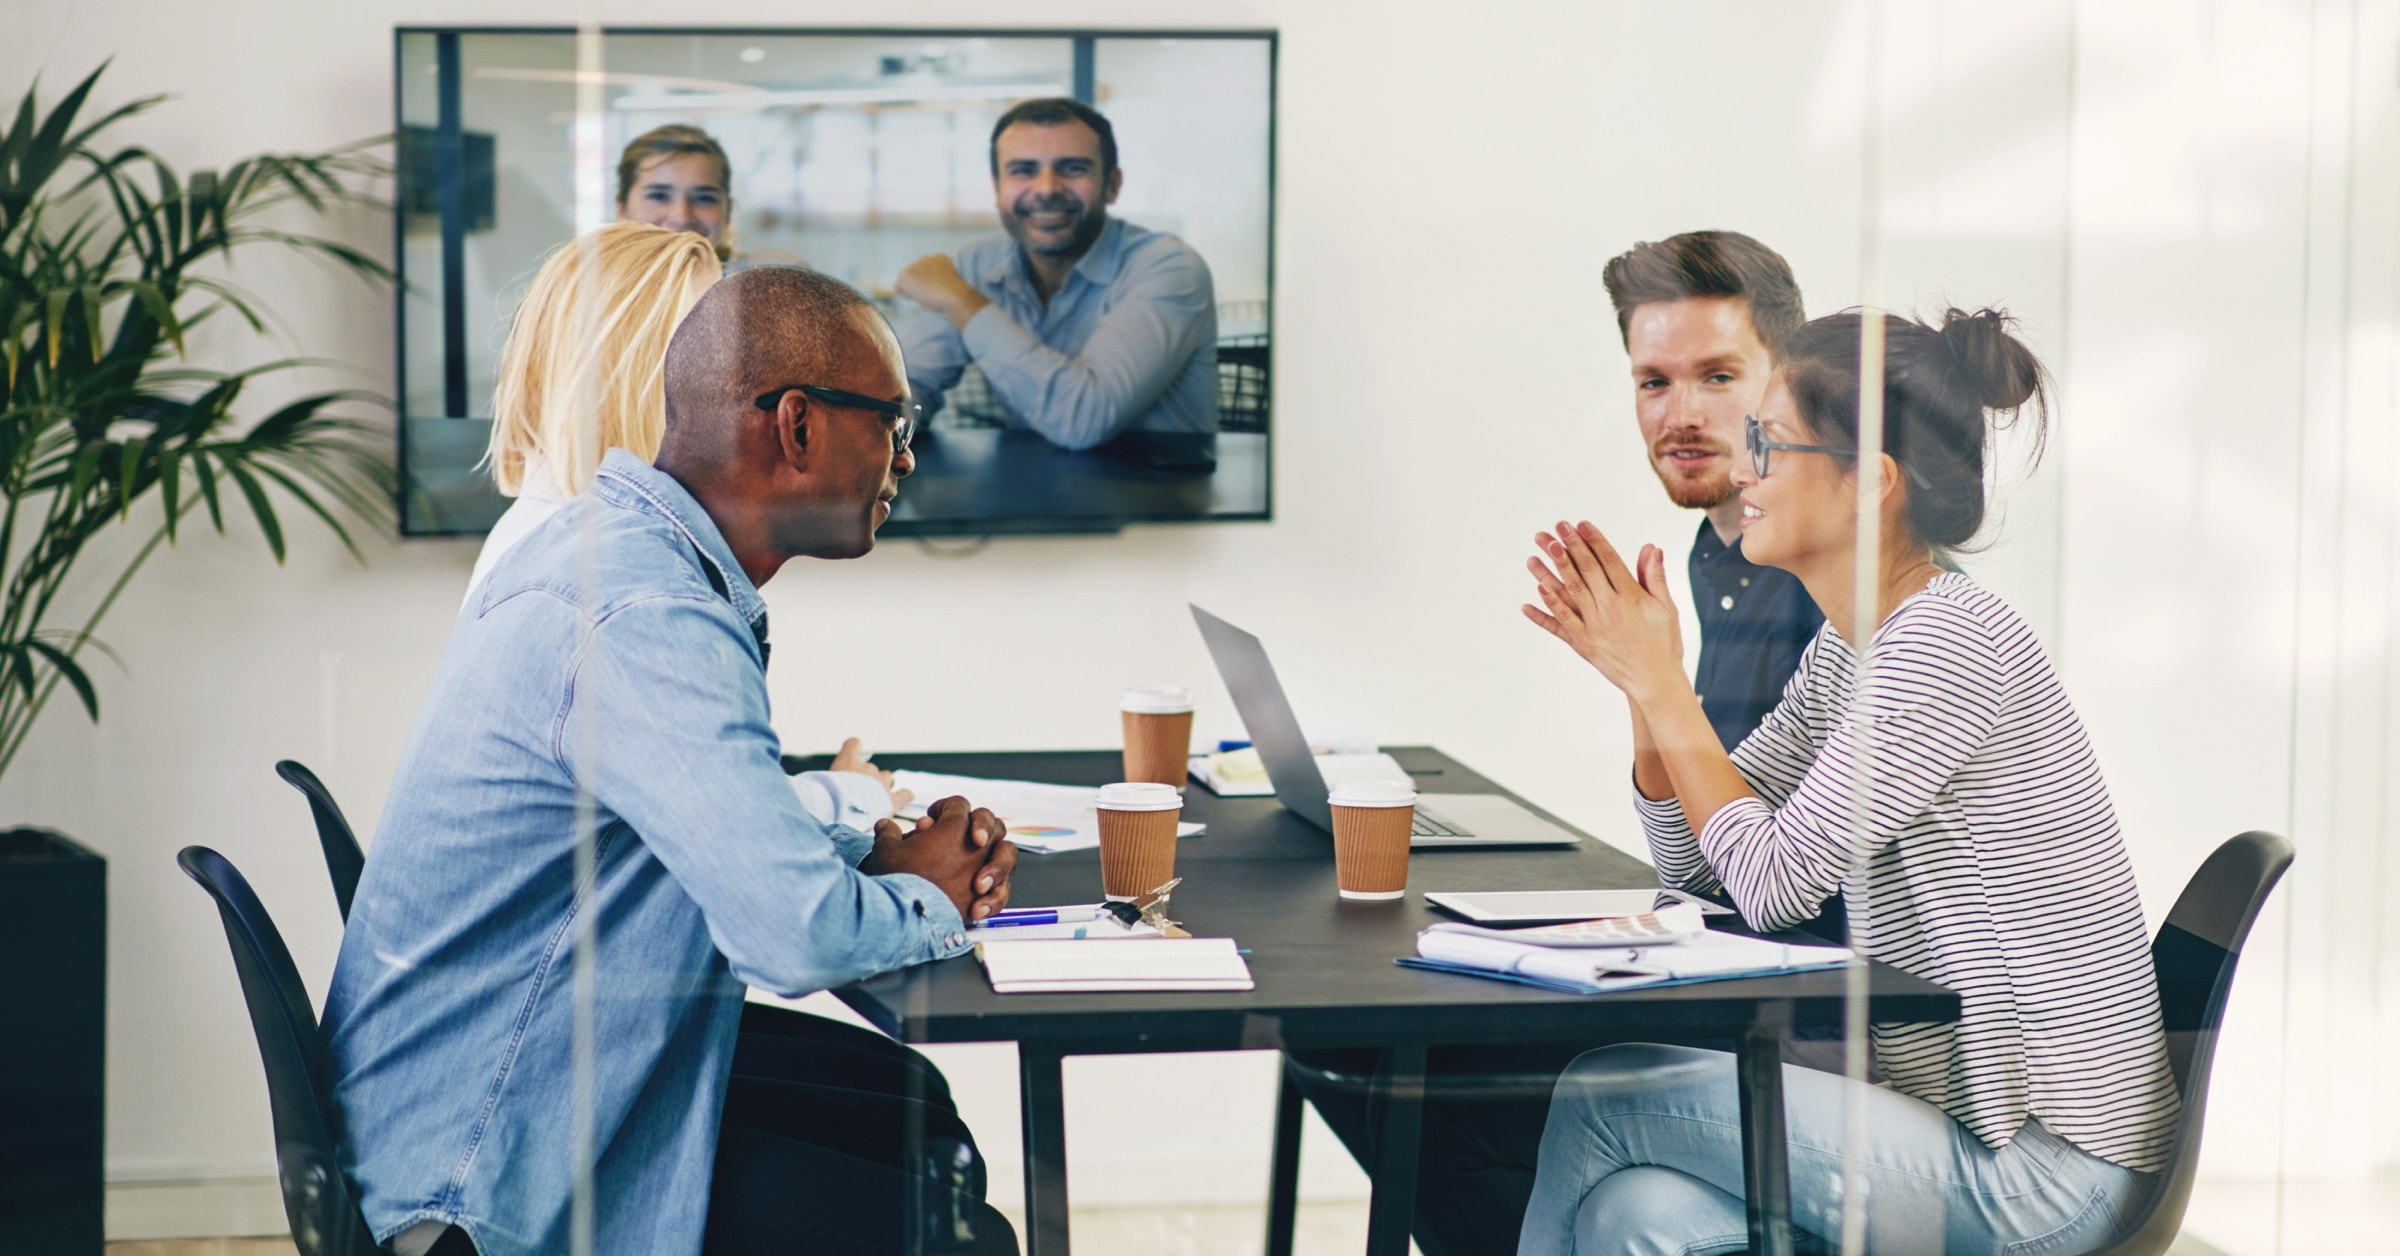 The latest trends in the video conferencing and collaboration industry see Skype for Business transition to Teams and the continued rise of huddle rooms. Learn more from the Lifesize channel partner experts.